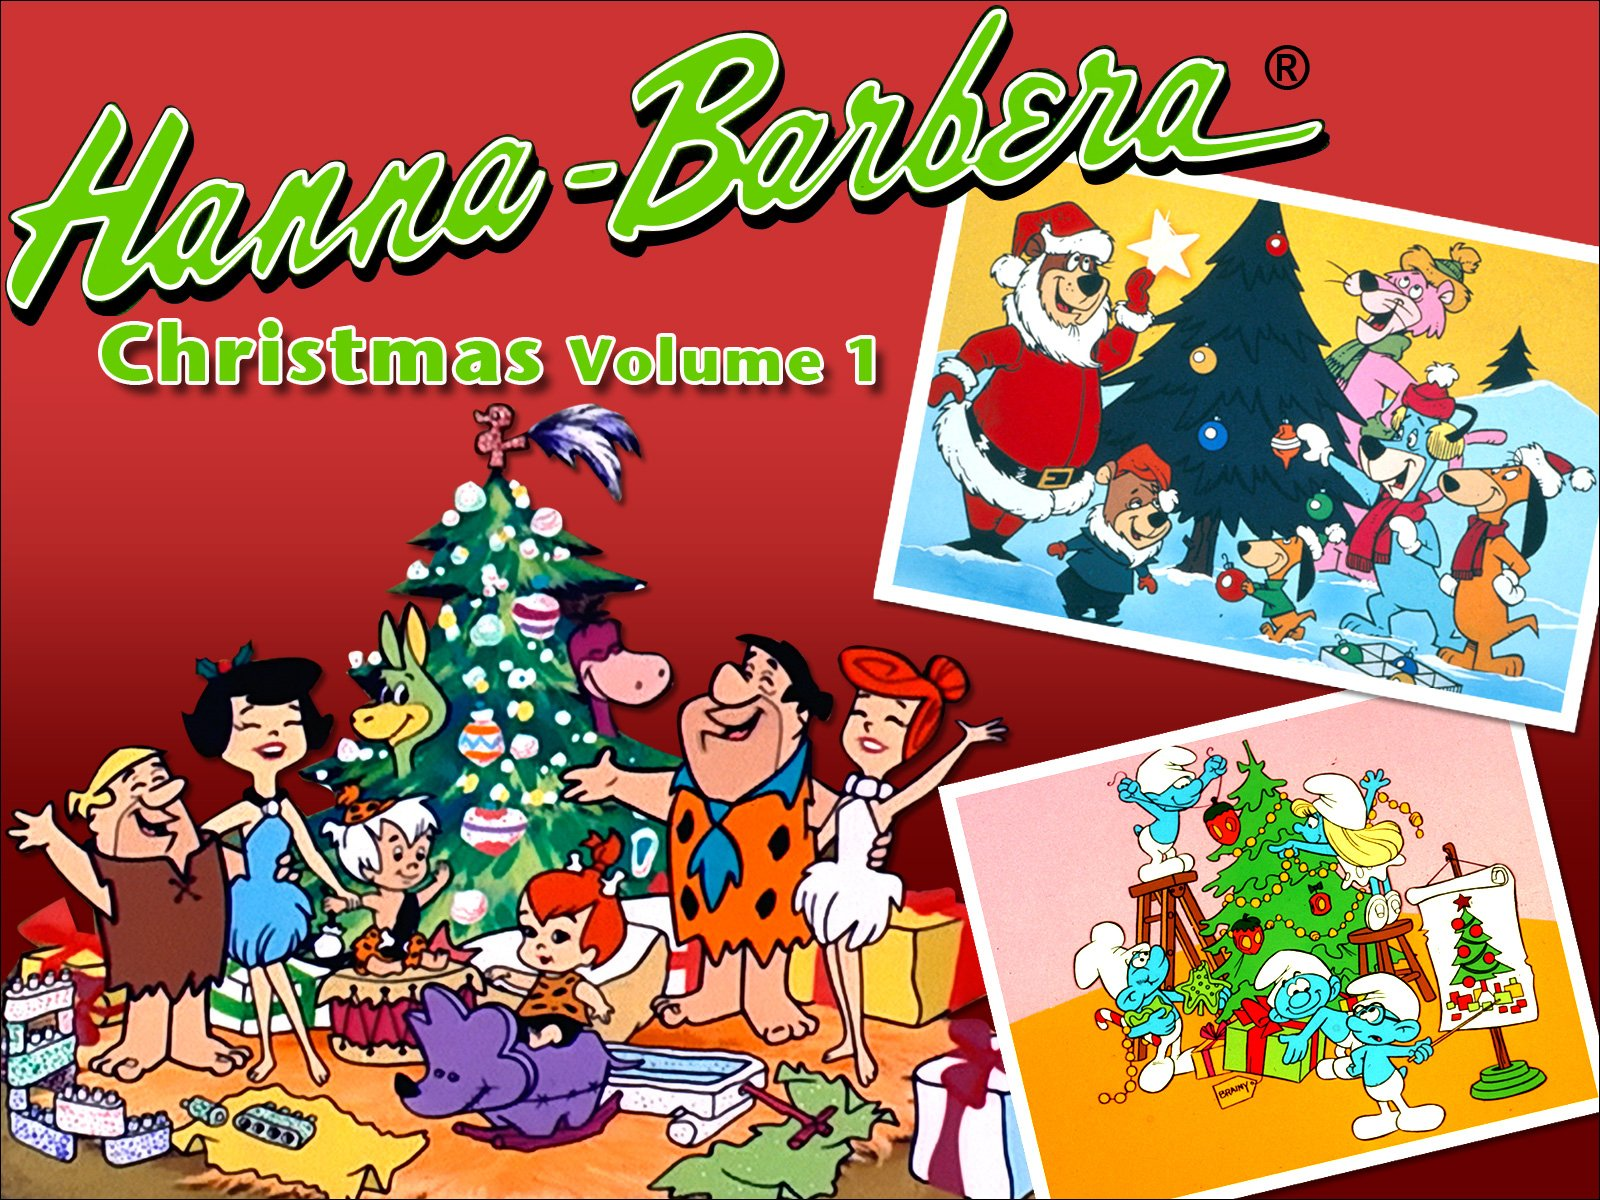 Amazon.com: Hanna Barbera Christmas Volume 1